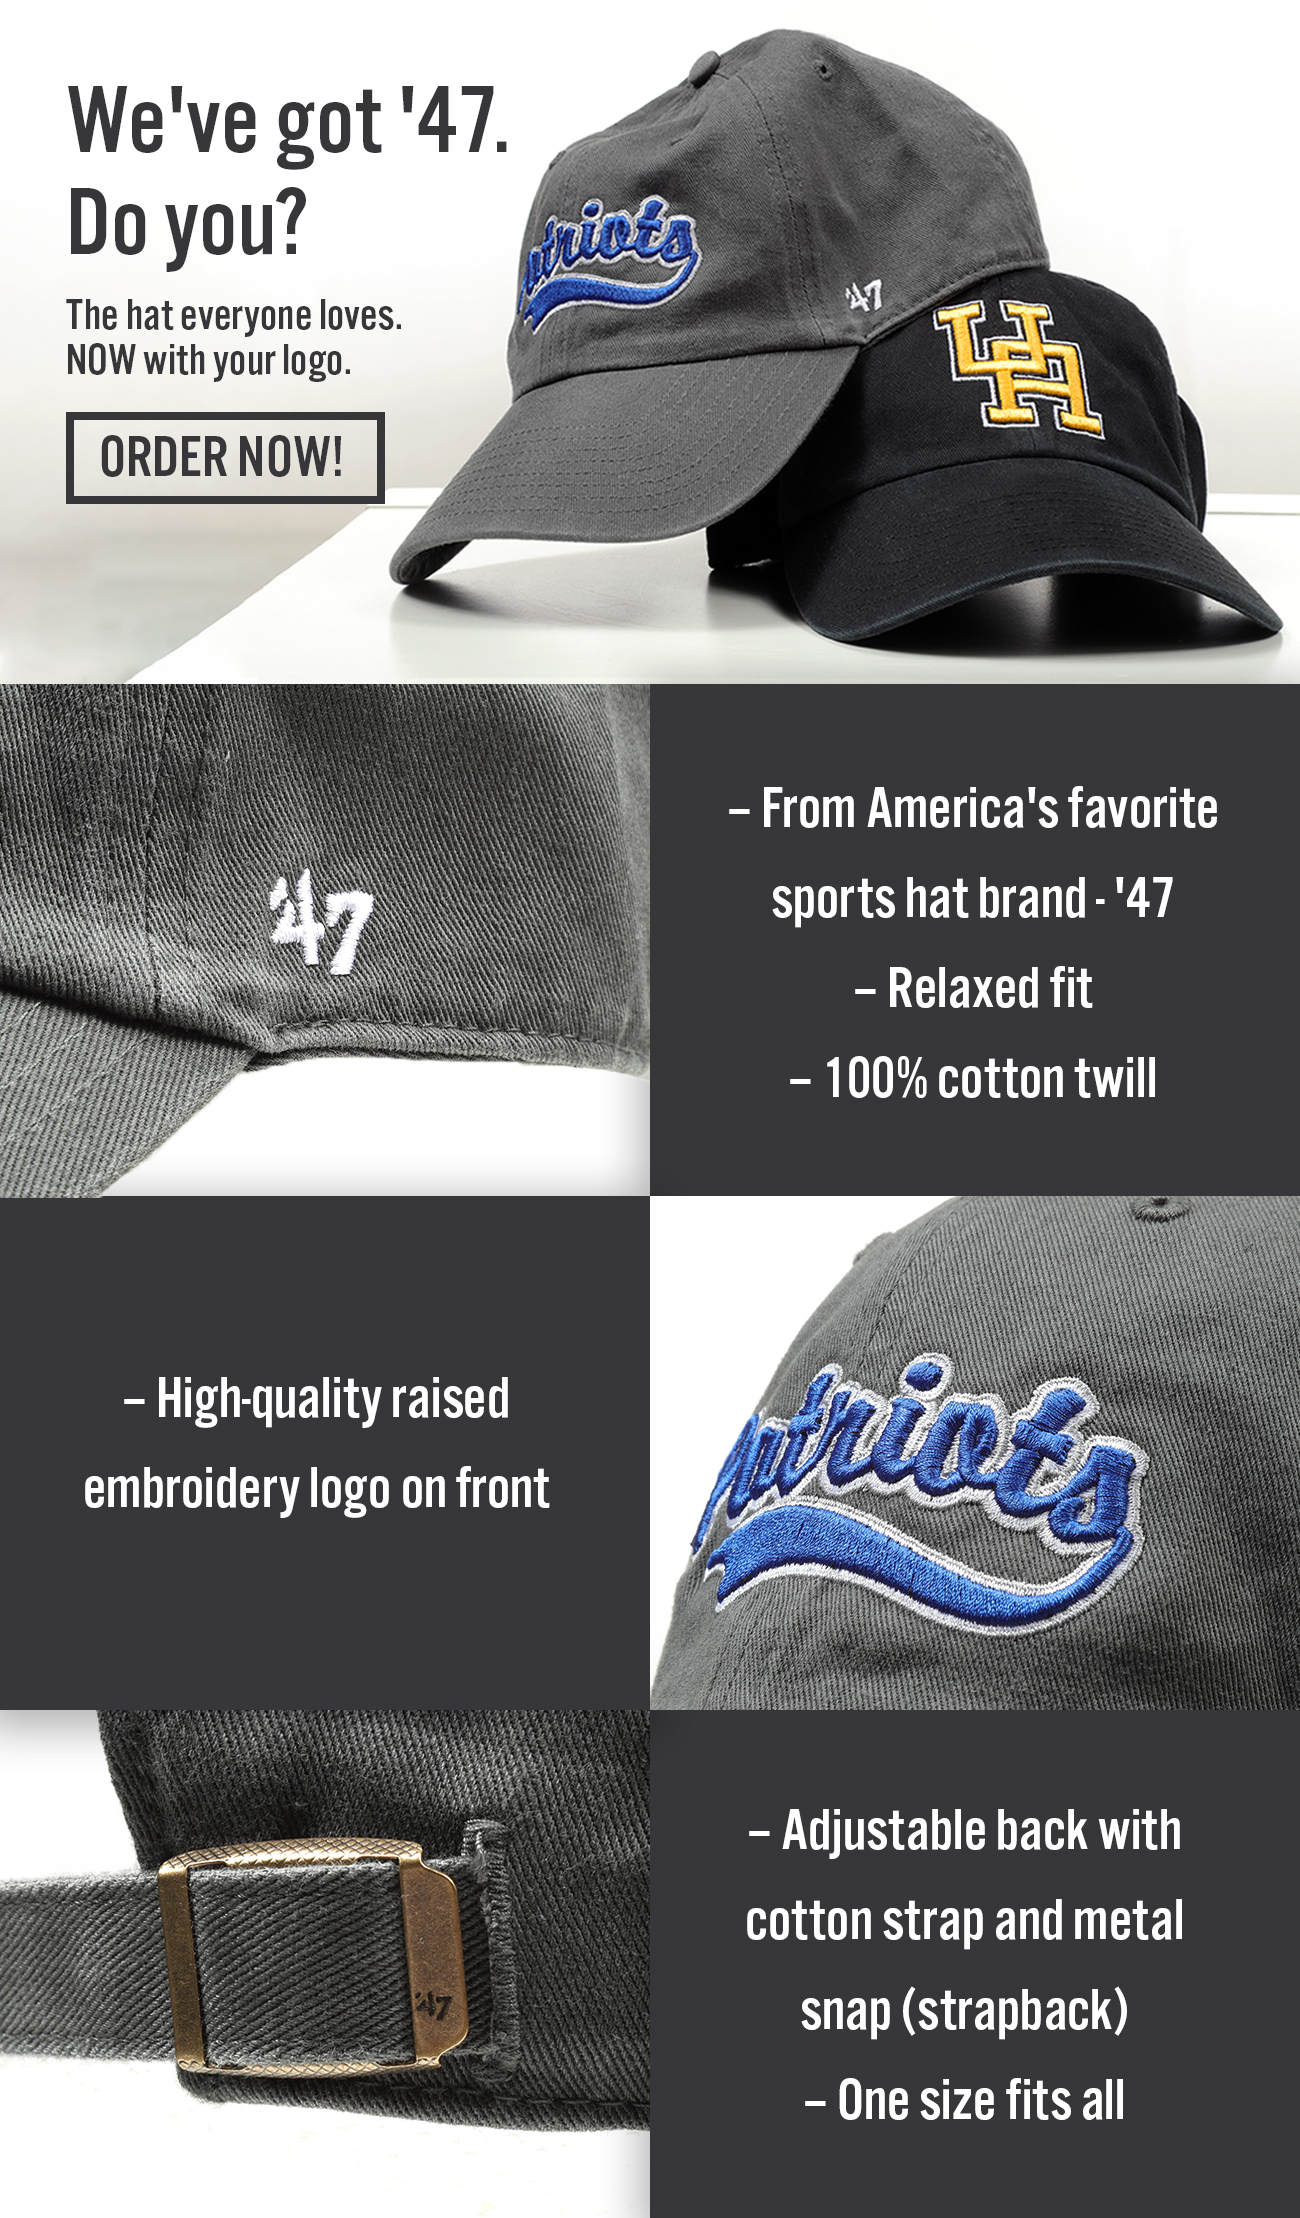 Email designed for Ares Sportswear advertising '47 brand hats.